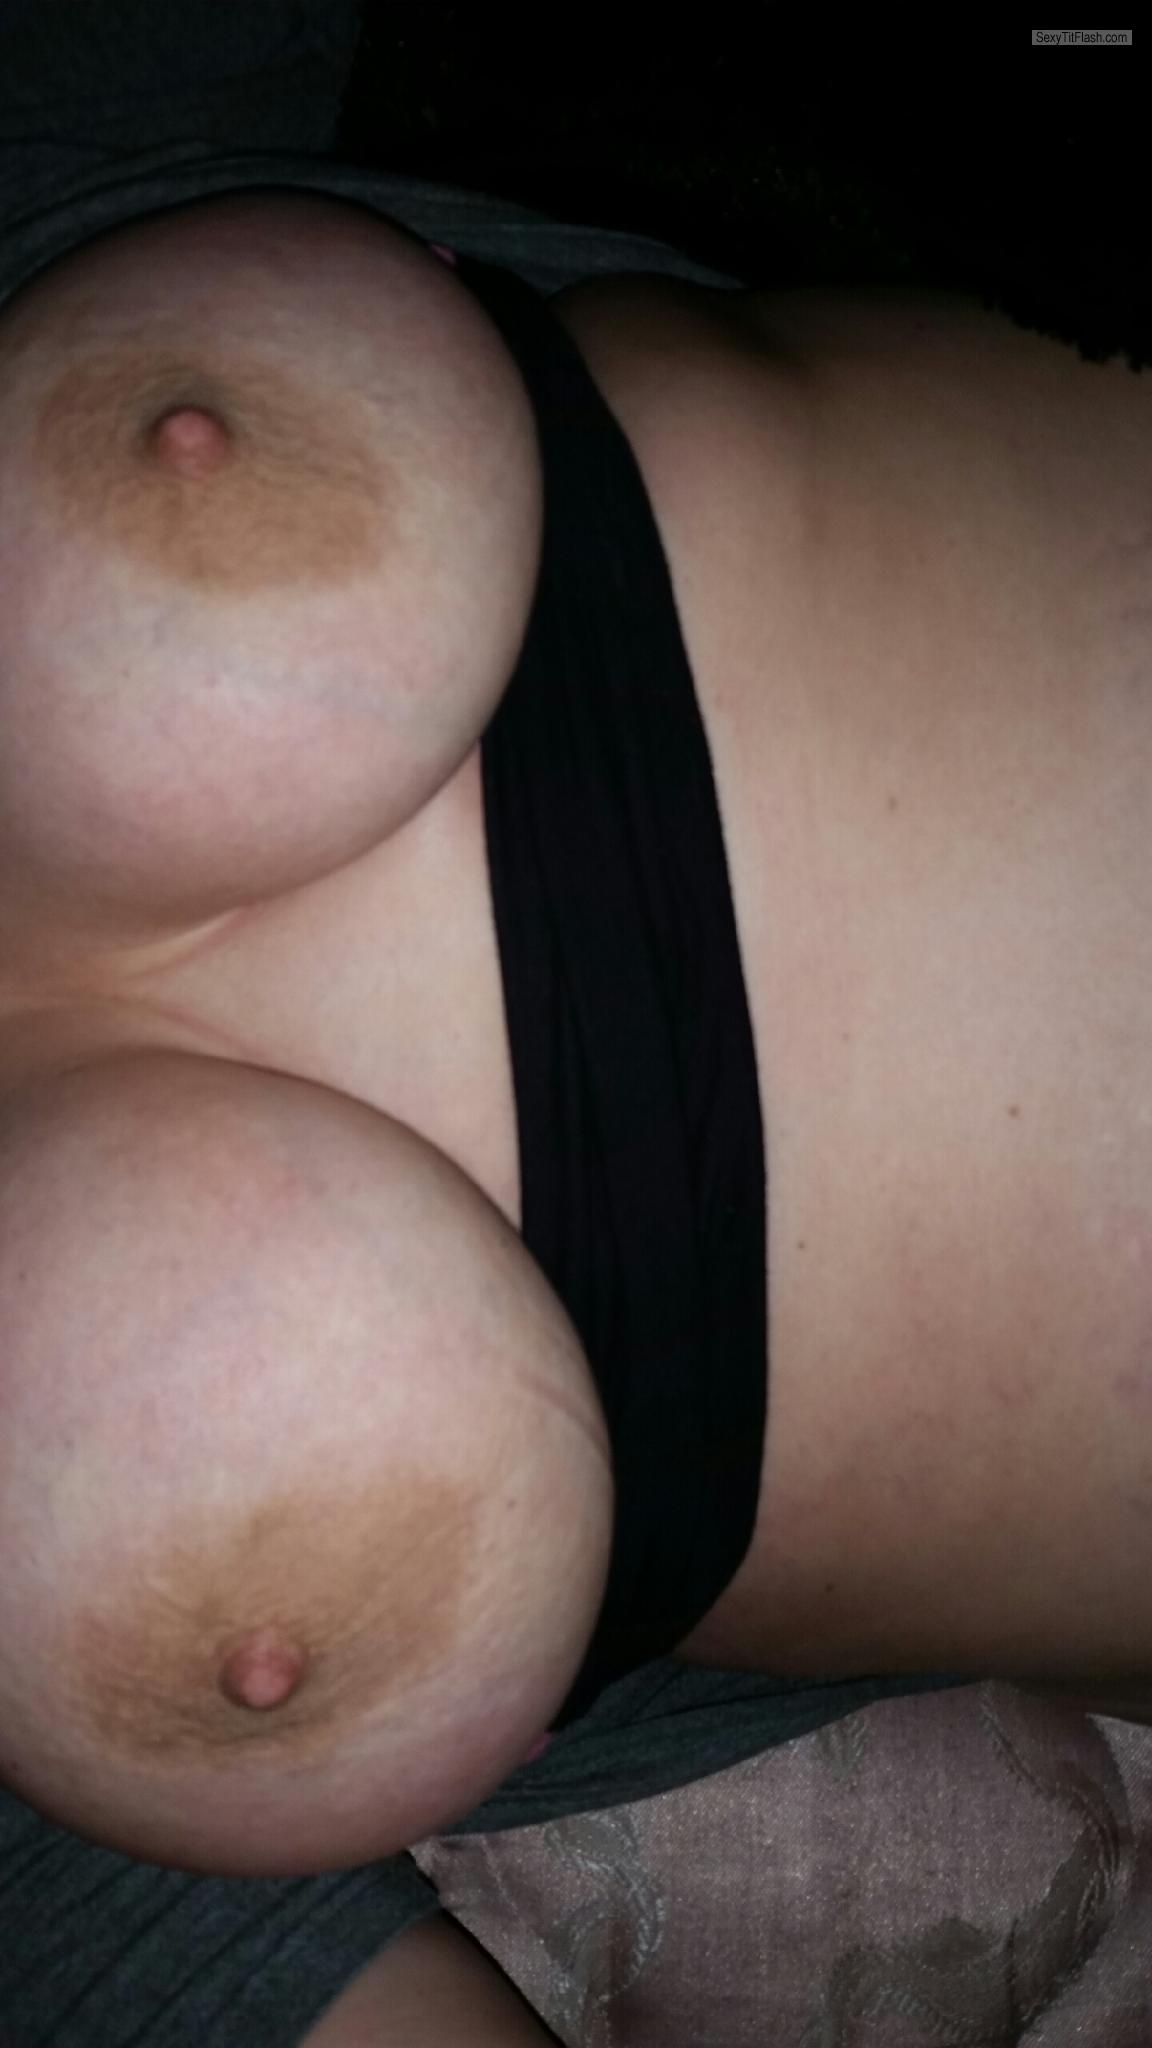 My Big Tits Selfie by Southbysouth